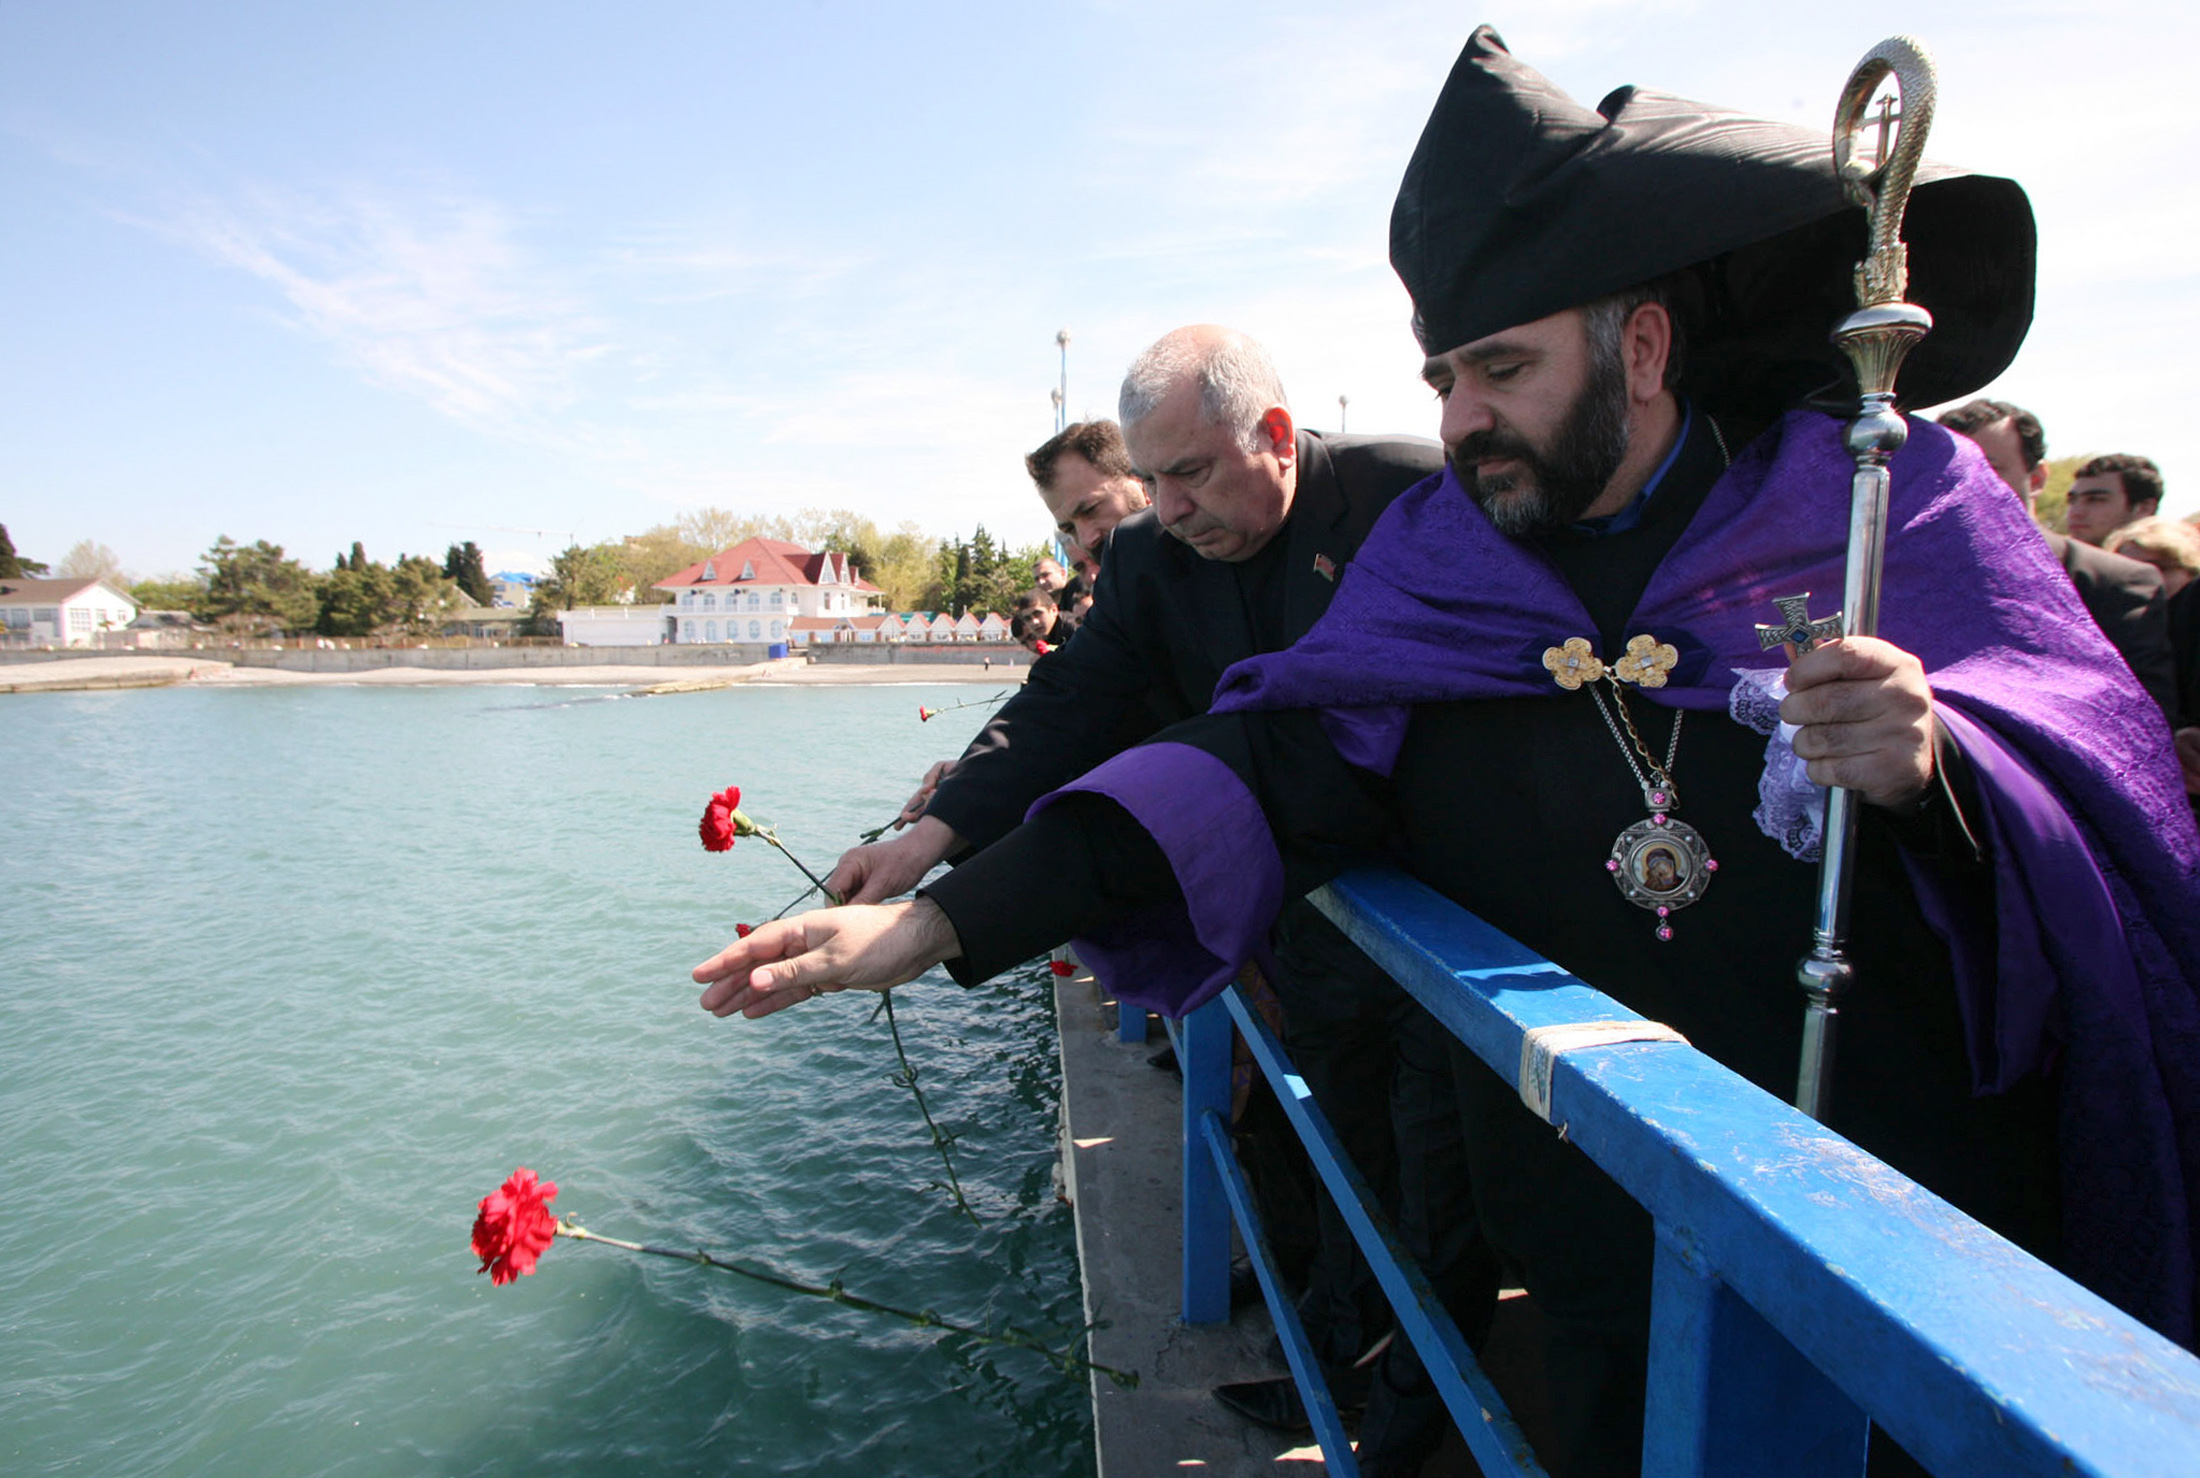 An Armenian priest throws flowers into the sea during a mourning ceremony for victims of the Airbus 320 plane crash in Adler near Sochi. ©REUTERS/Eduard Korniyenko